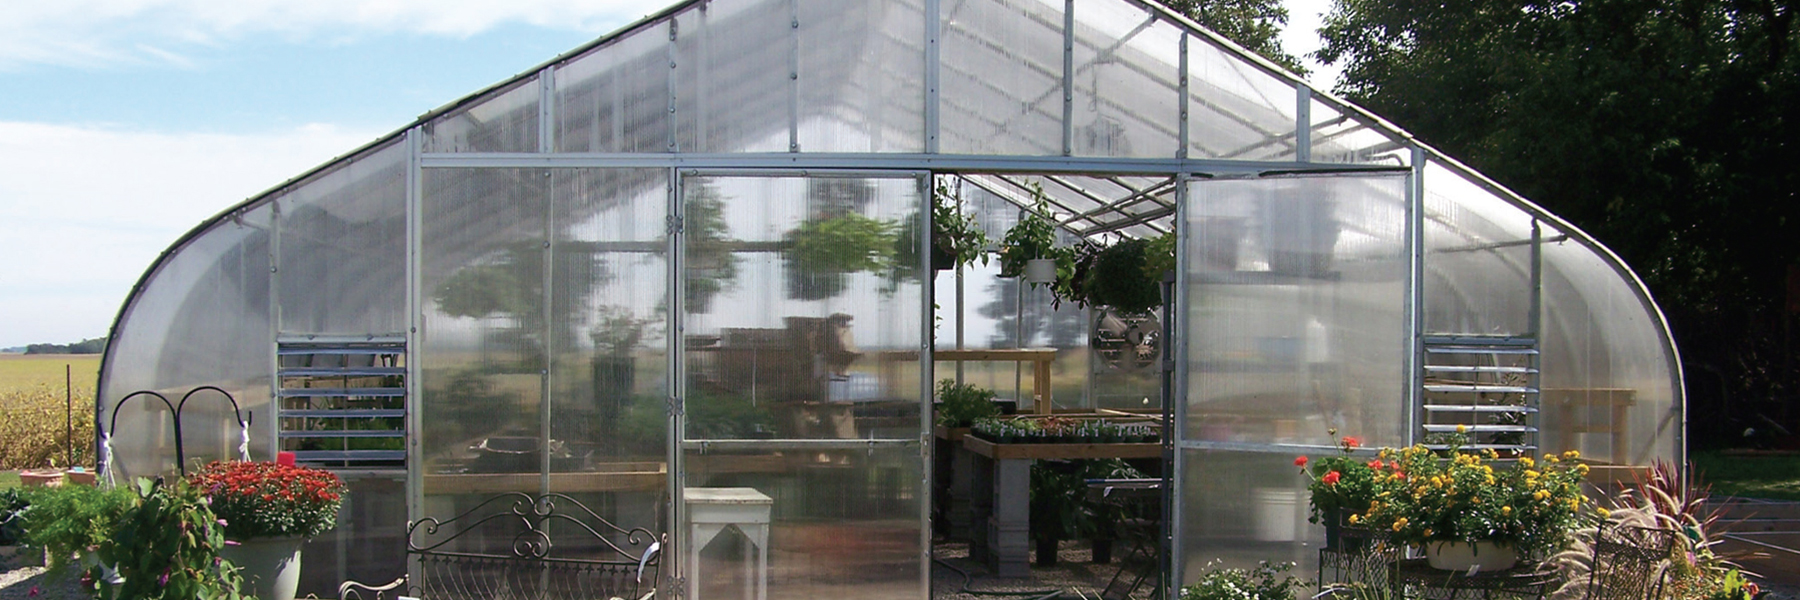 TLC county floral greenhouse